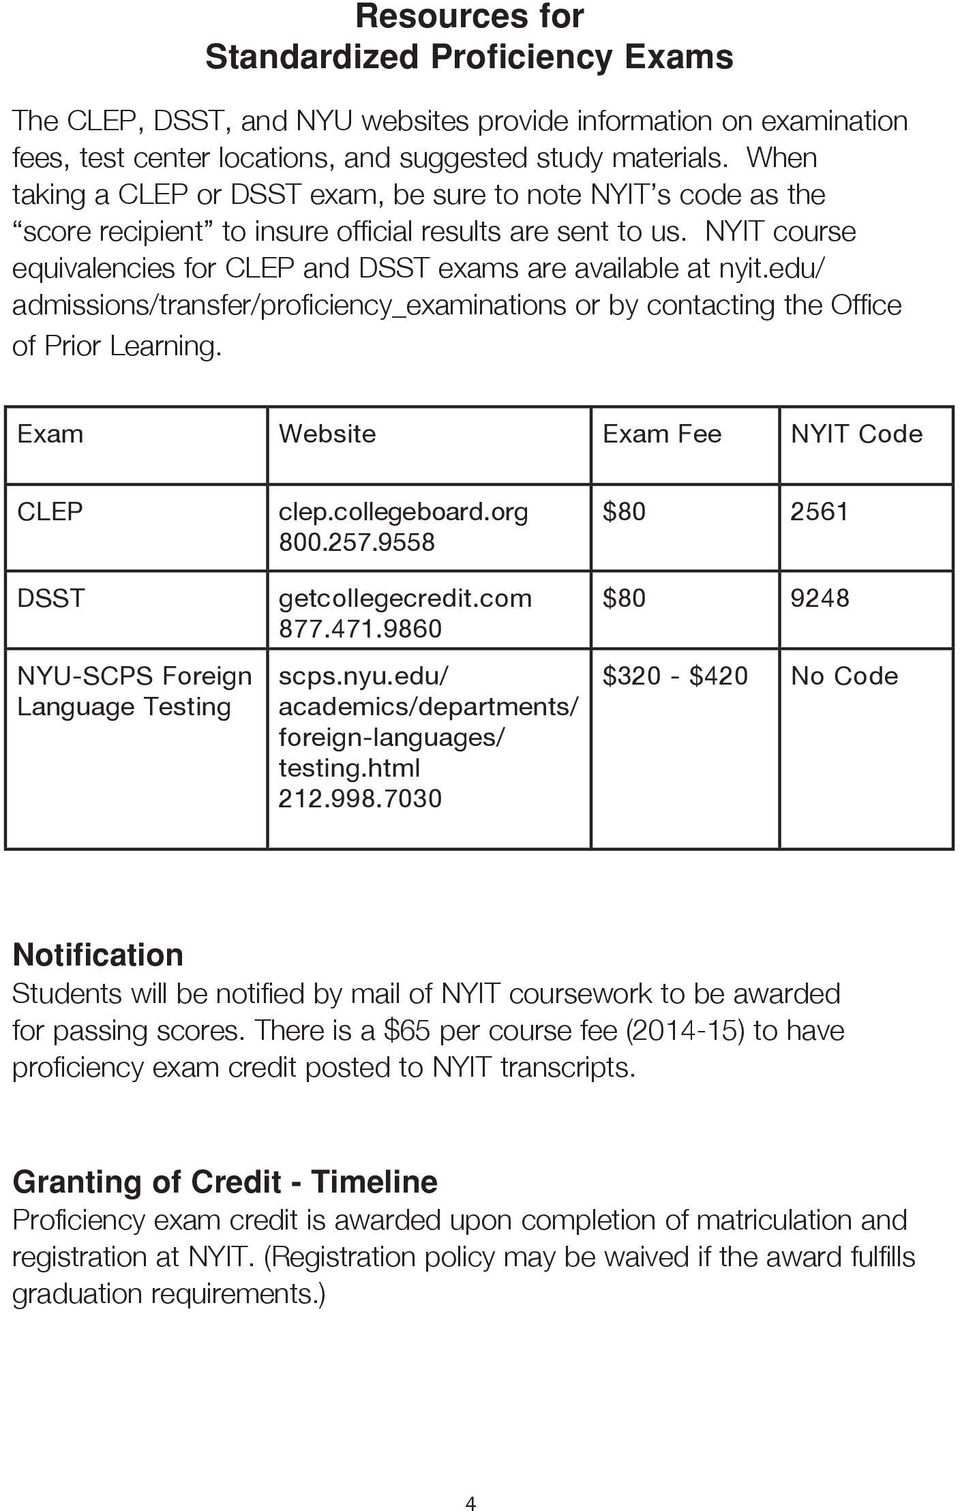 edu/ admissions/transfer/proficiency_examinations or by contacting the Office of Prior Learning. Exam Website Exam Fee NYIT Code CLEP DSST NYU-SCPS Foreign Language Testing clep.collegeboard.org 800.